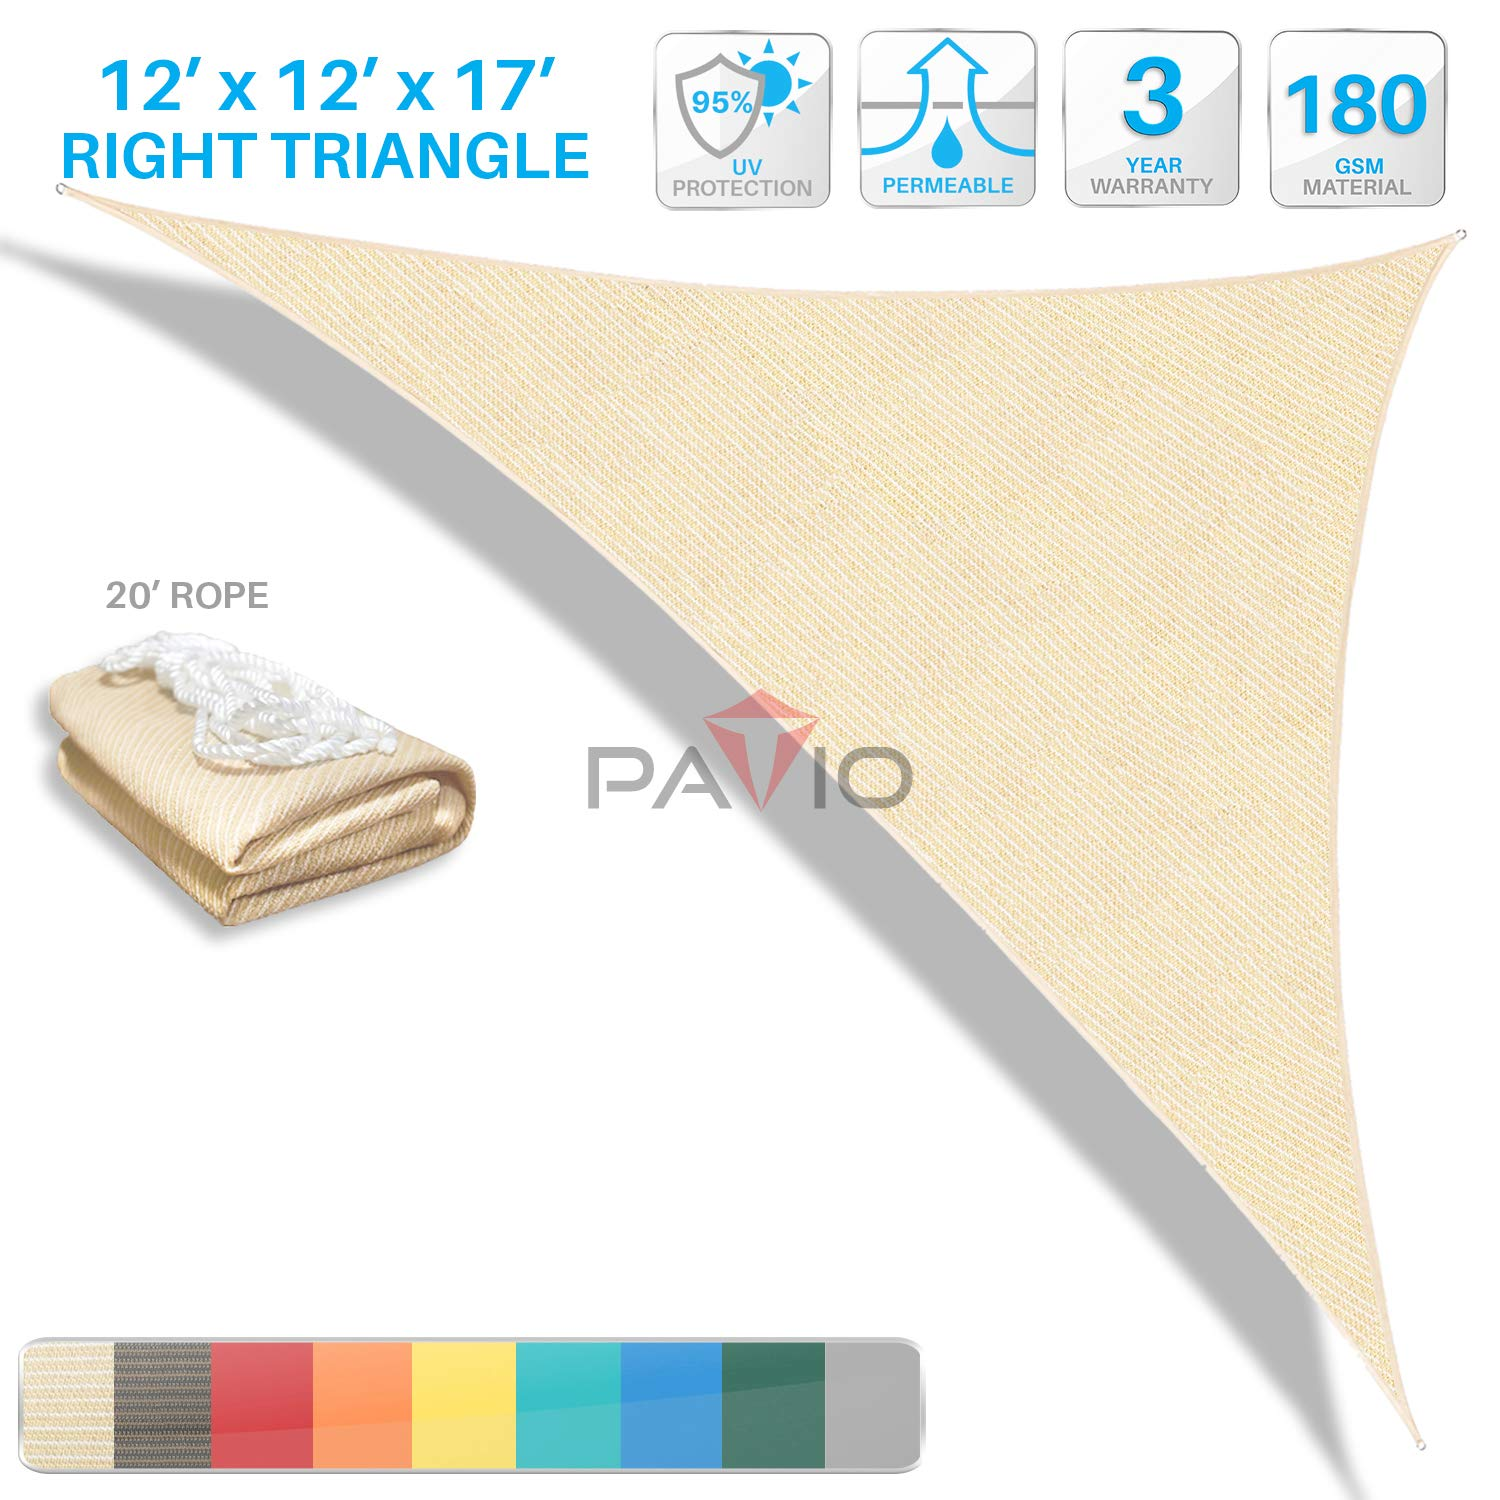 Patio Paradise 12' x 12' x 17' Beige Sun Shade Sail Right Triangle Canopy - Permeable UV Block Fabric Durable Outdoor - Customized Available